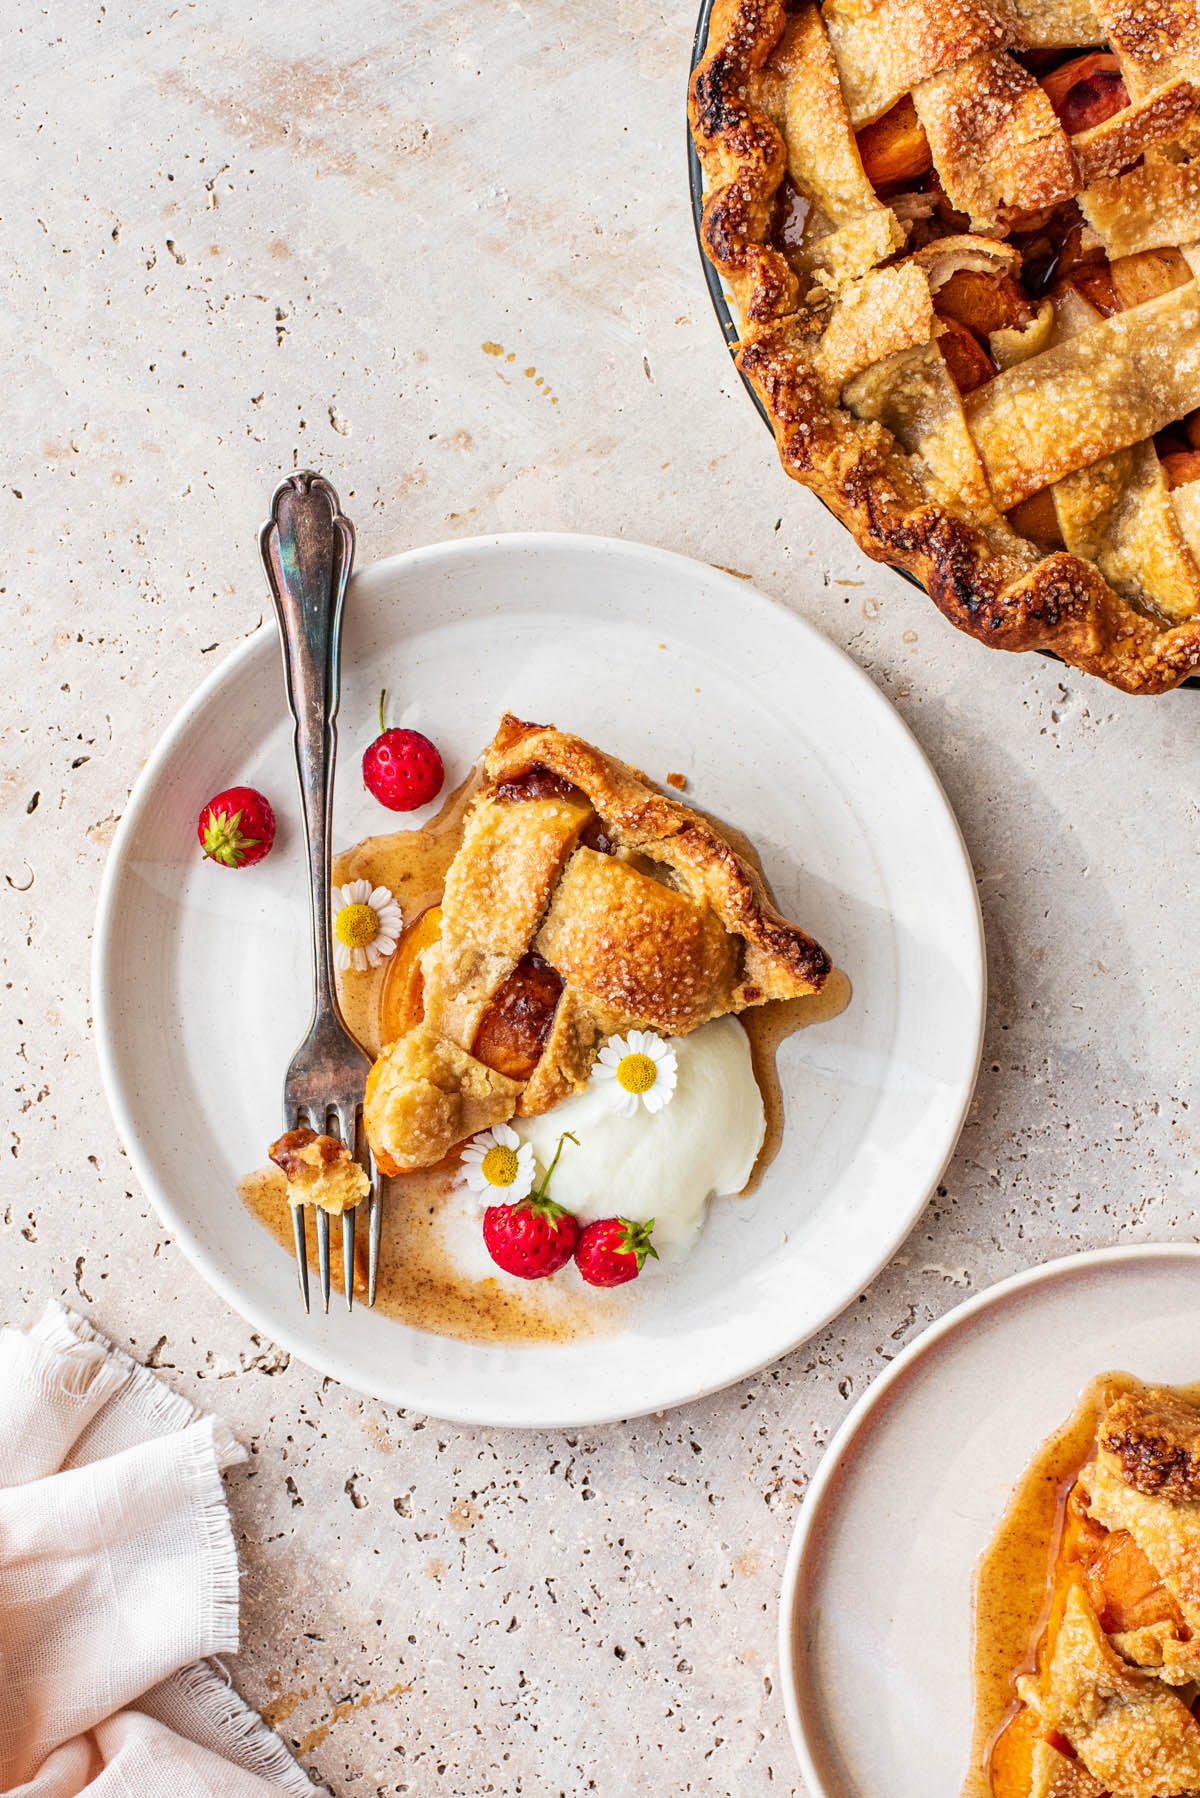 Pie slices on plates, with yogurt, fresh berries, and edible flowers.